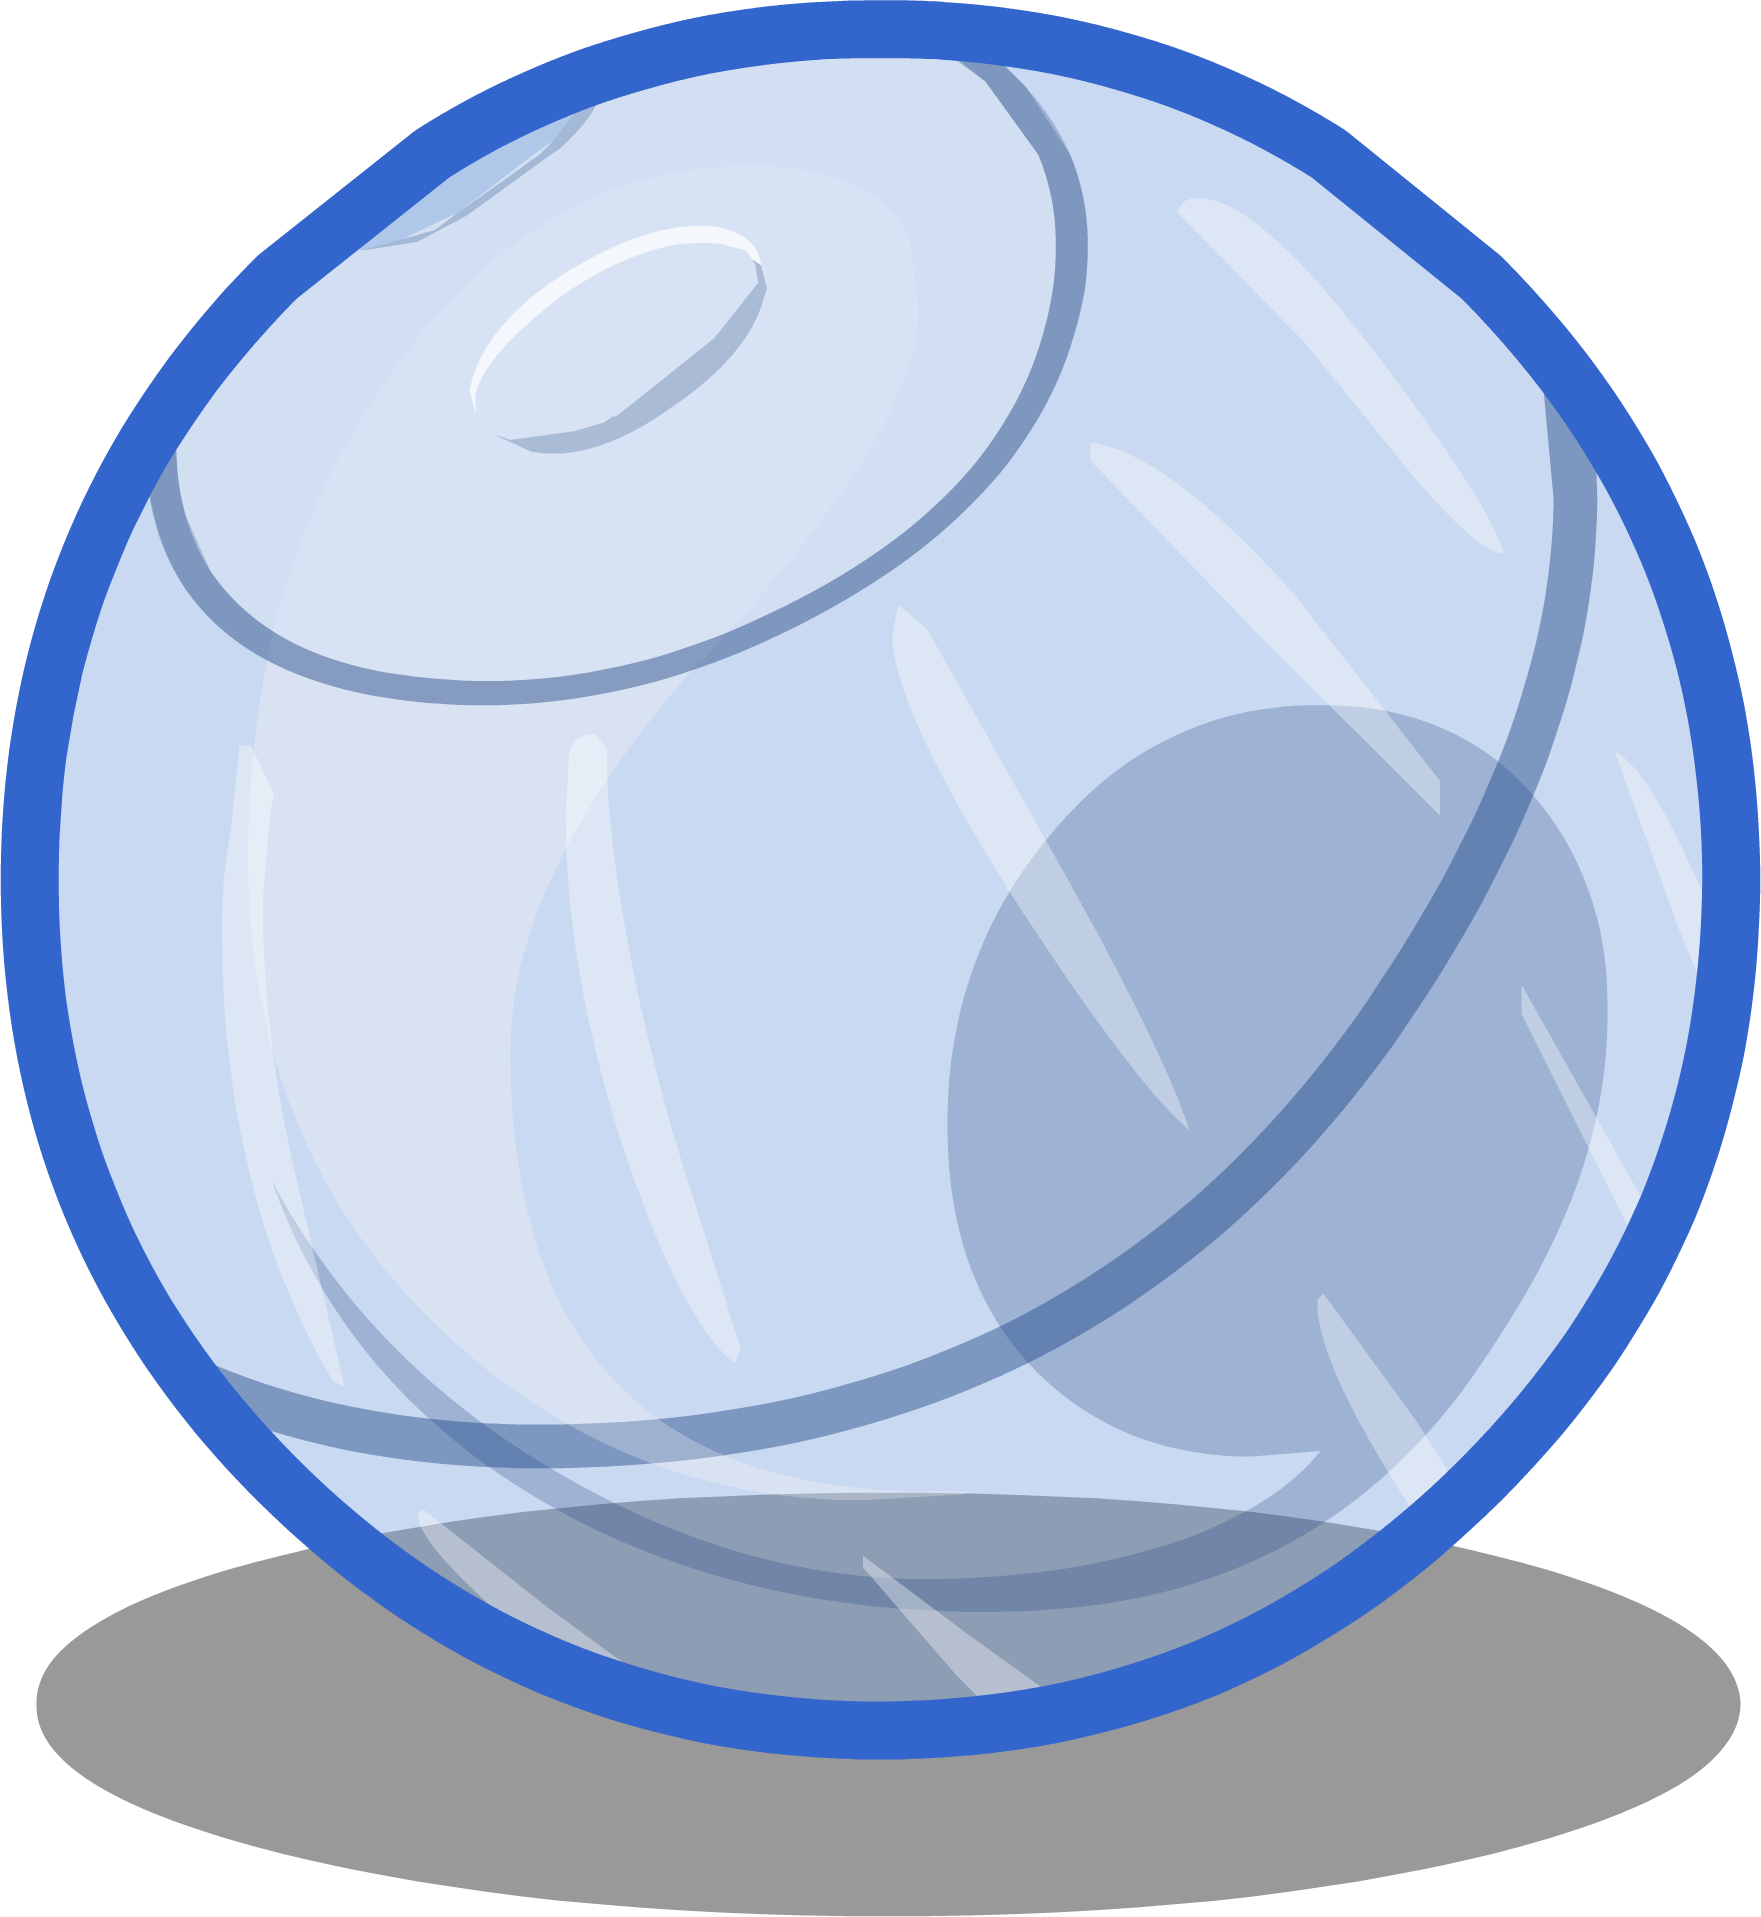 Image puffle club penguin. Ball sprite png clip art royalty free stock